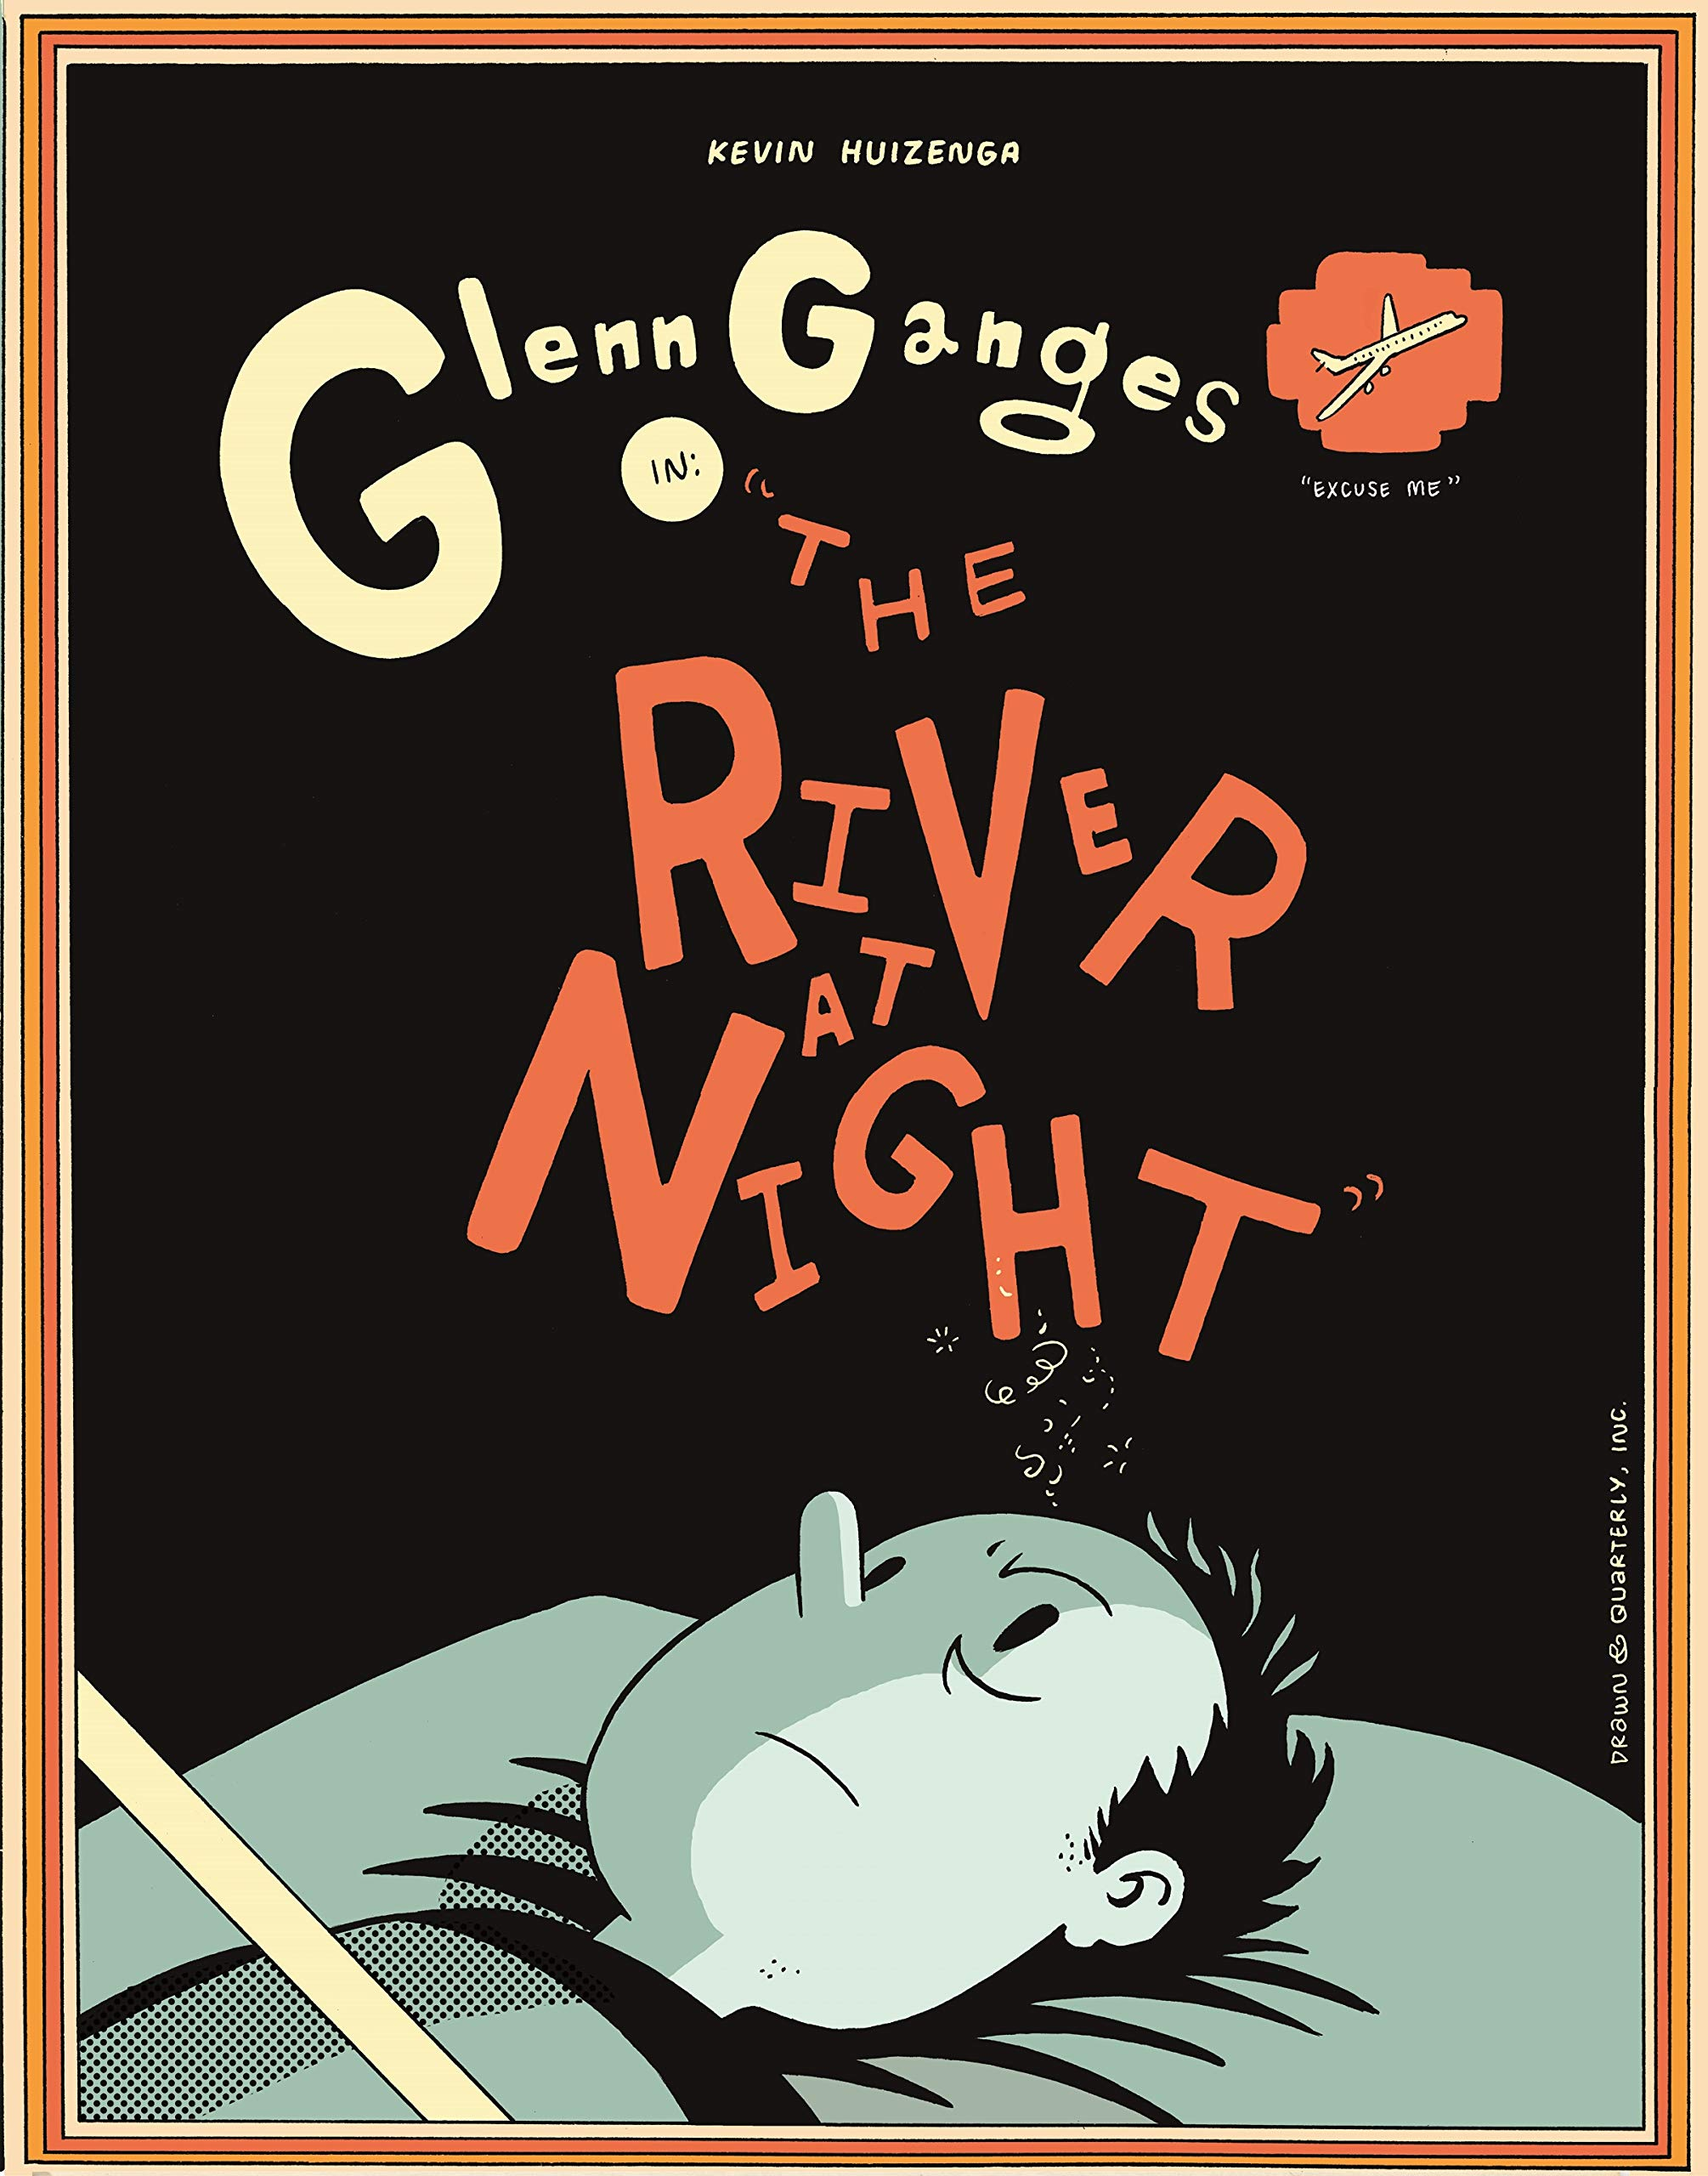 Panel Mania: Glenn Ganges in: The River at Night by Kevin Huizenga